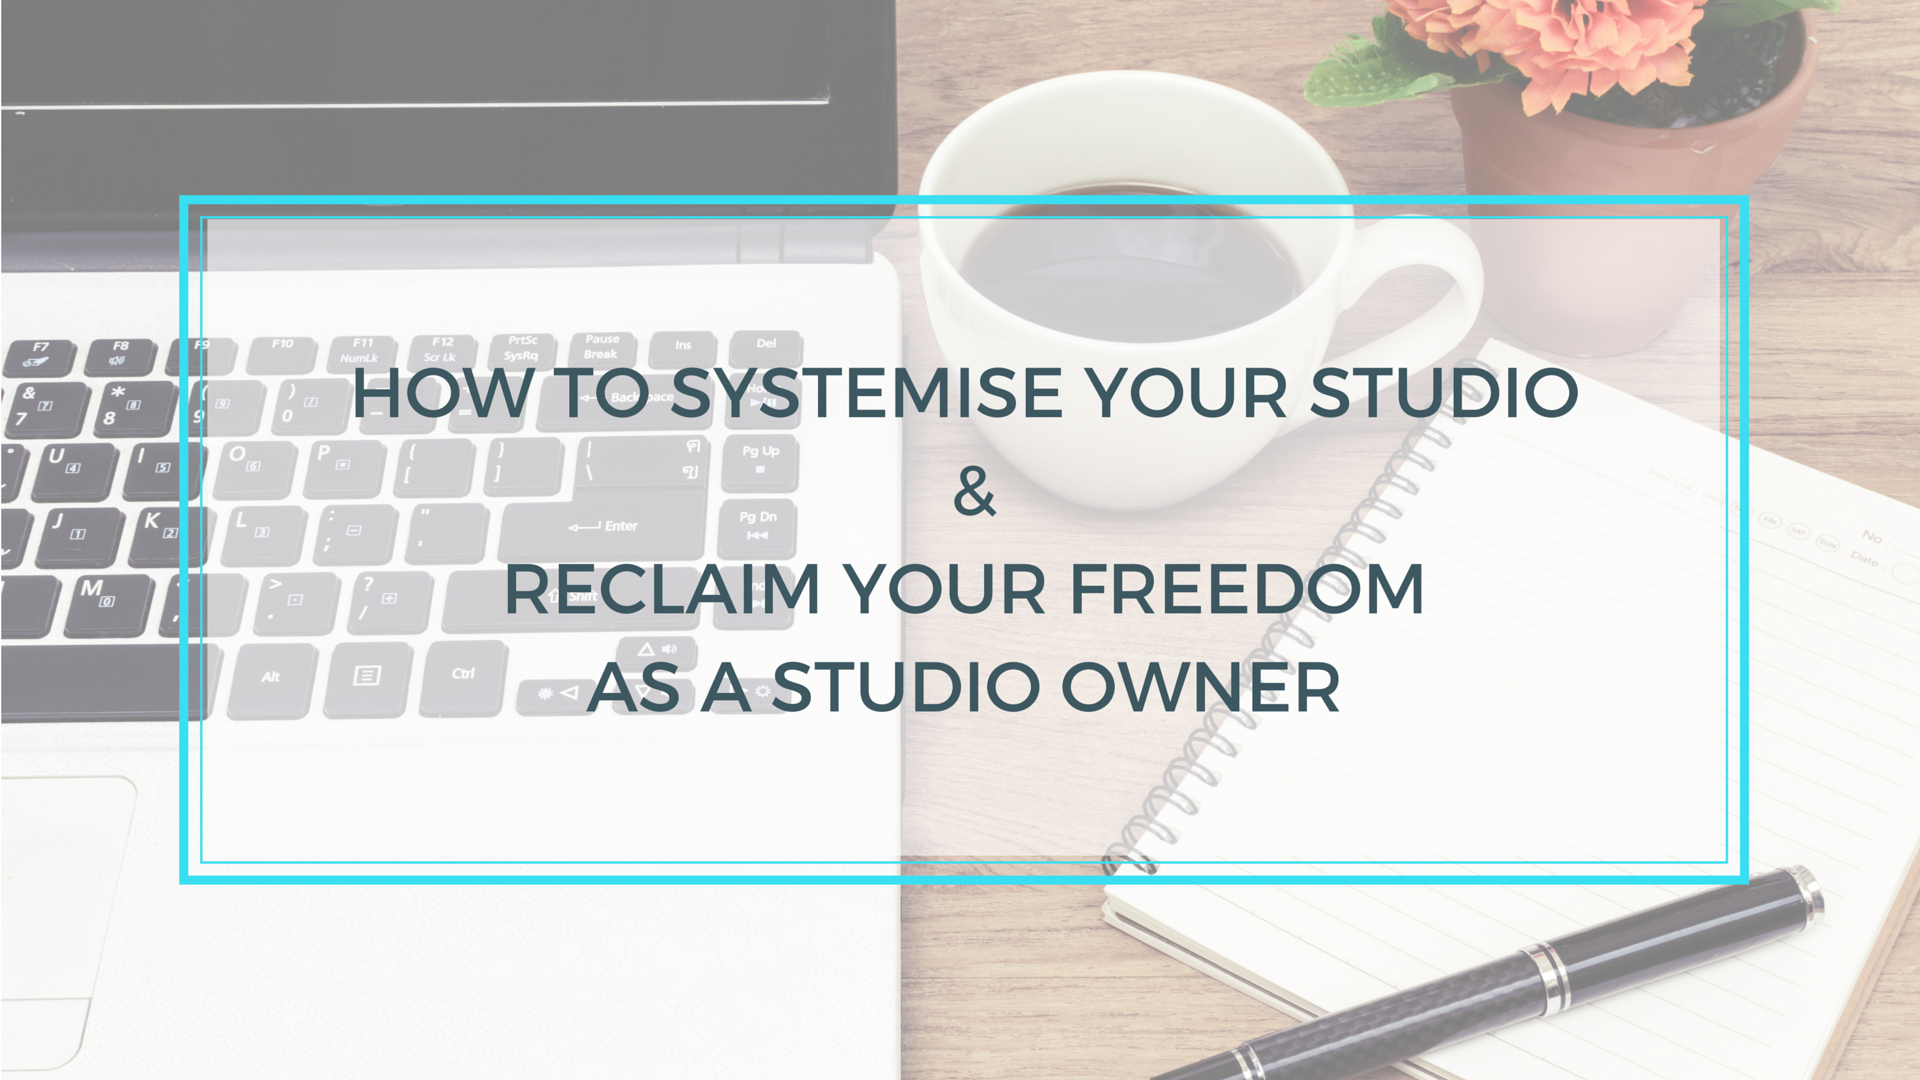 How to Systemise your Studio & Reclaim Your Freedom as a Studio Owner